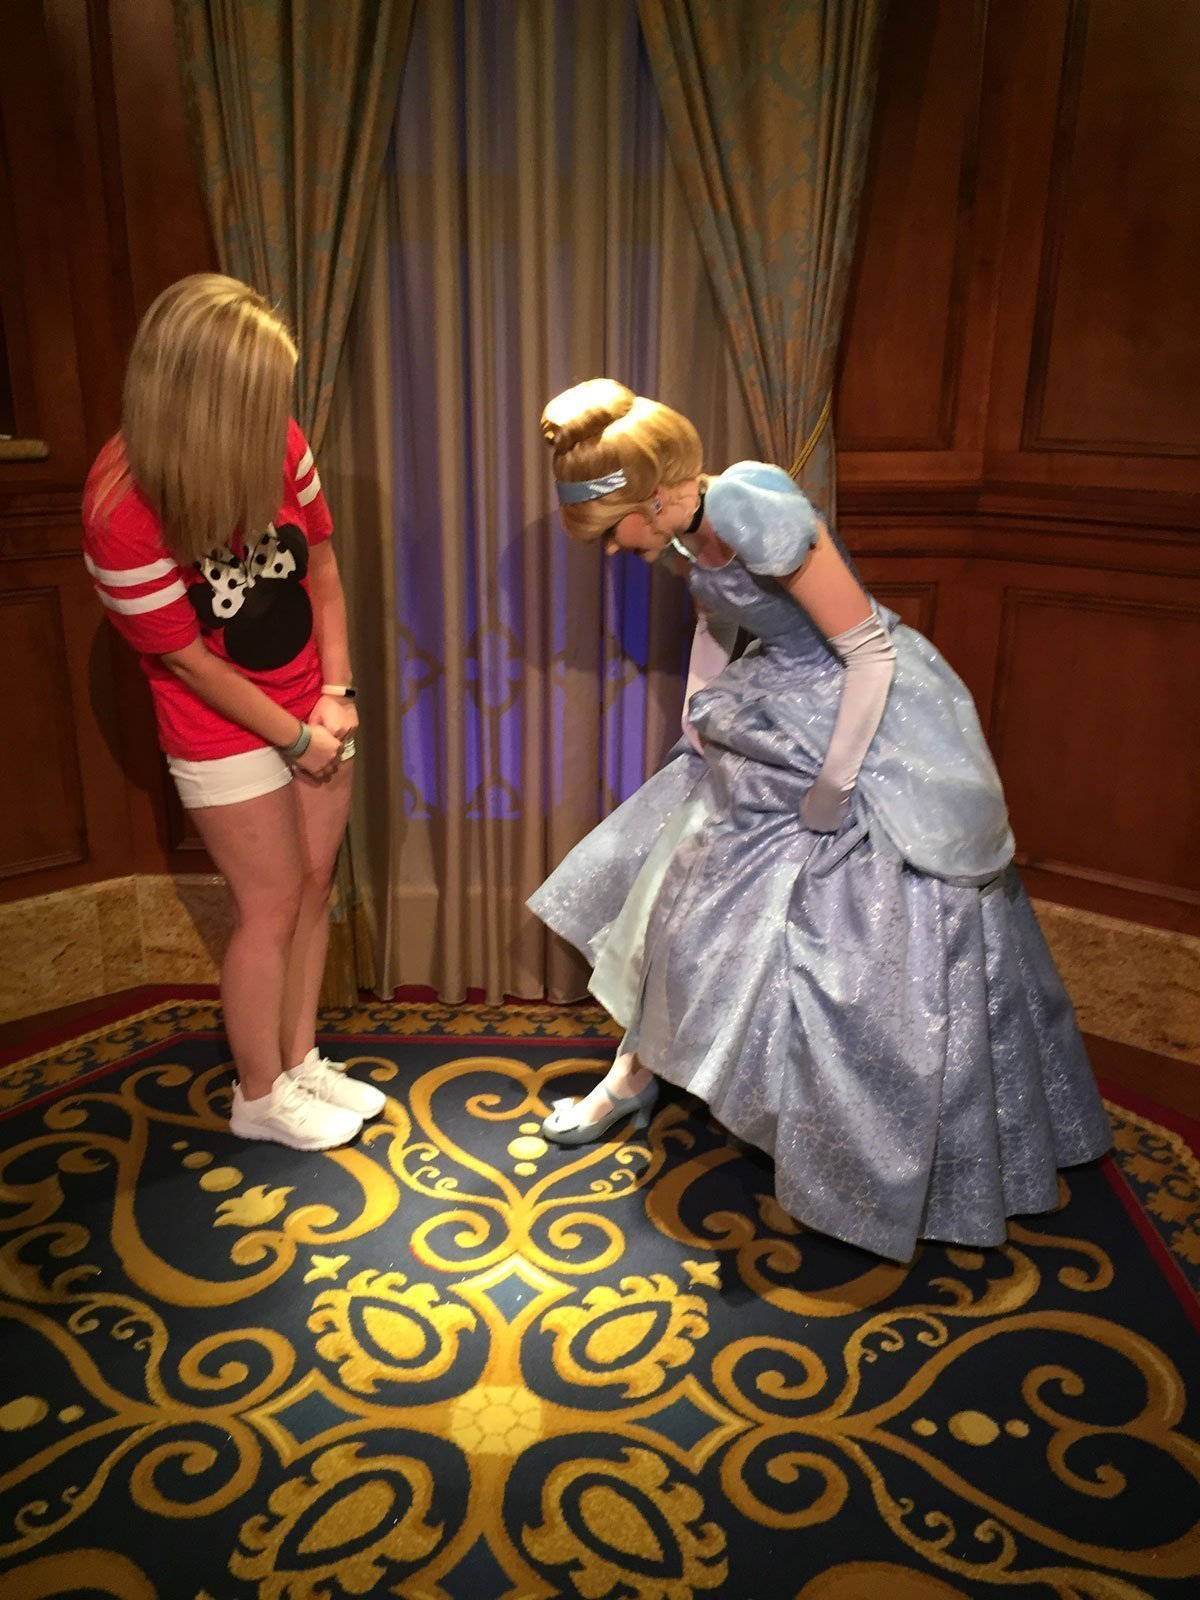 Cinderella showing off her shoes during meet 'n' greet at Magic Kingdom